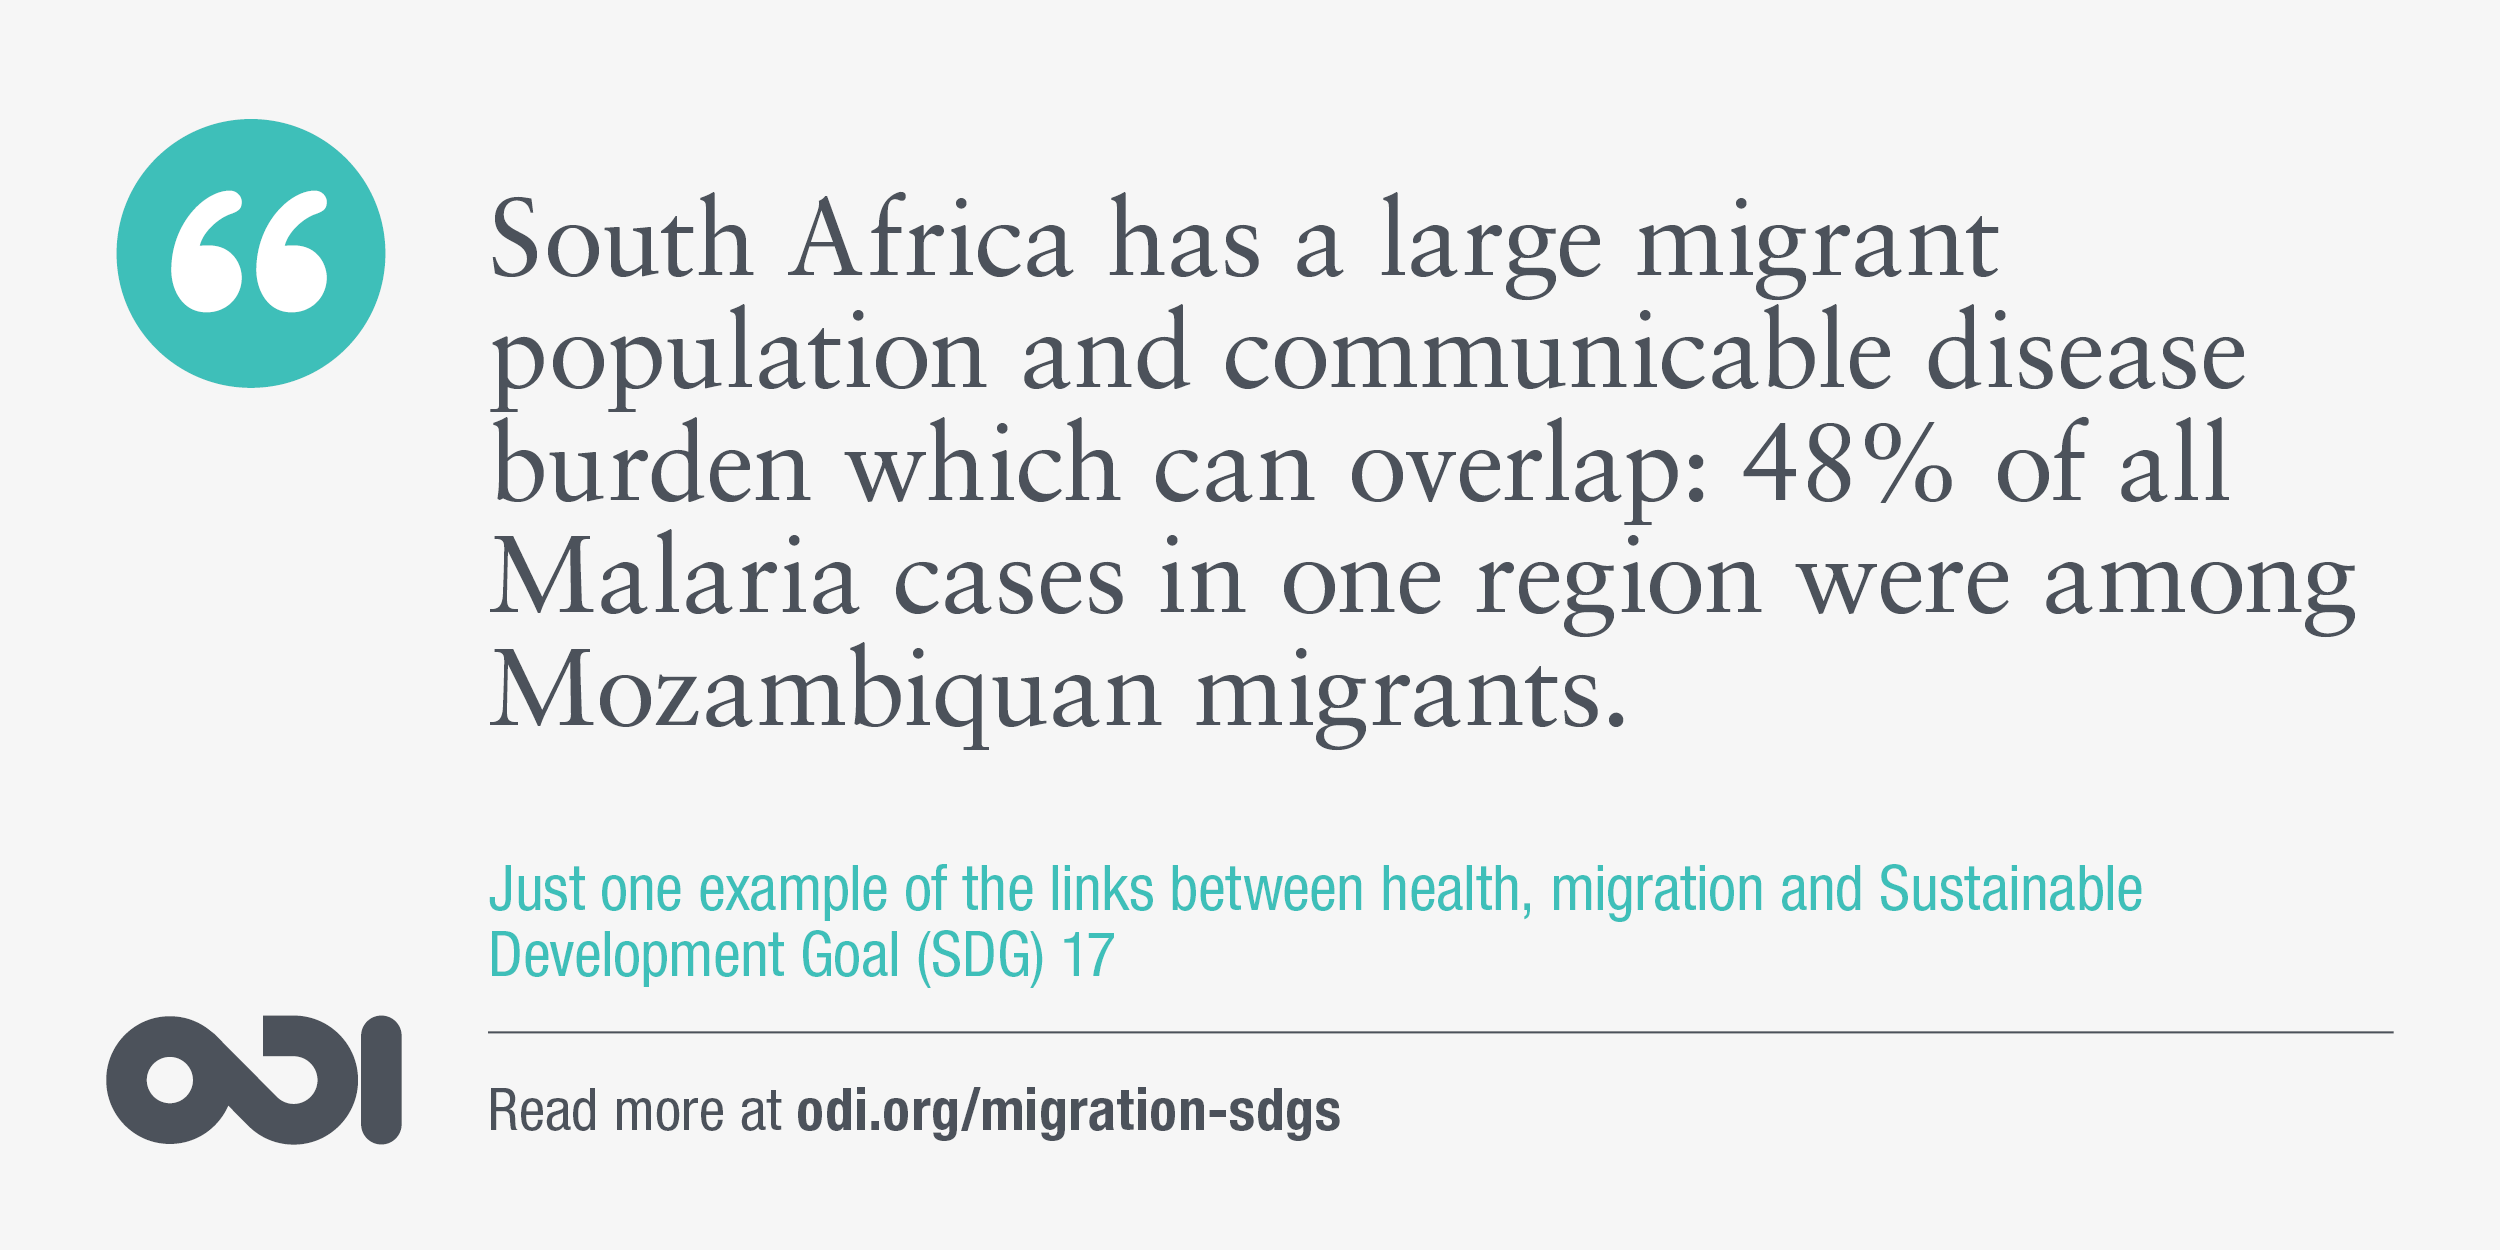 The links between health, migration and SDG 17.